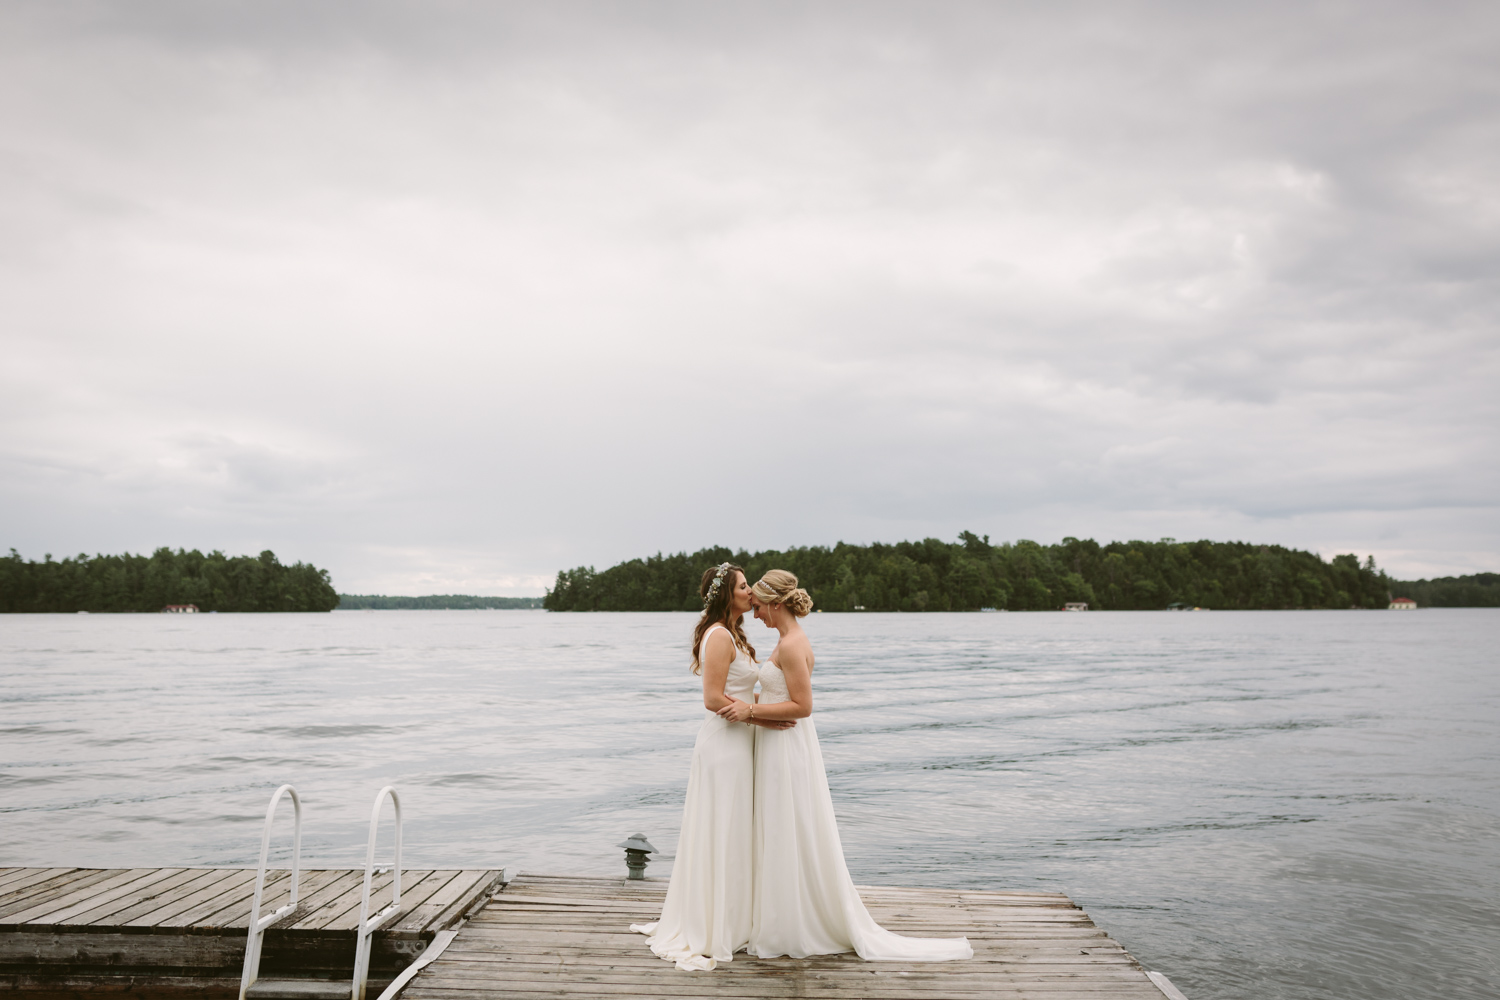 Brides embracing on a dock in Muskoka